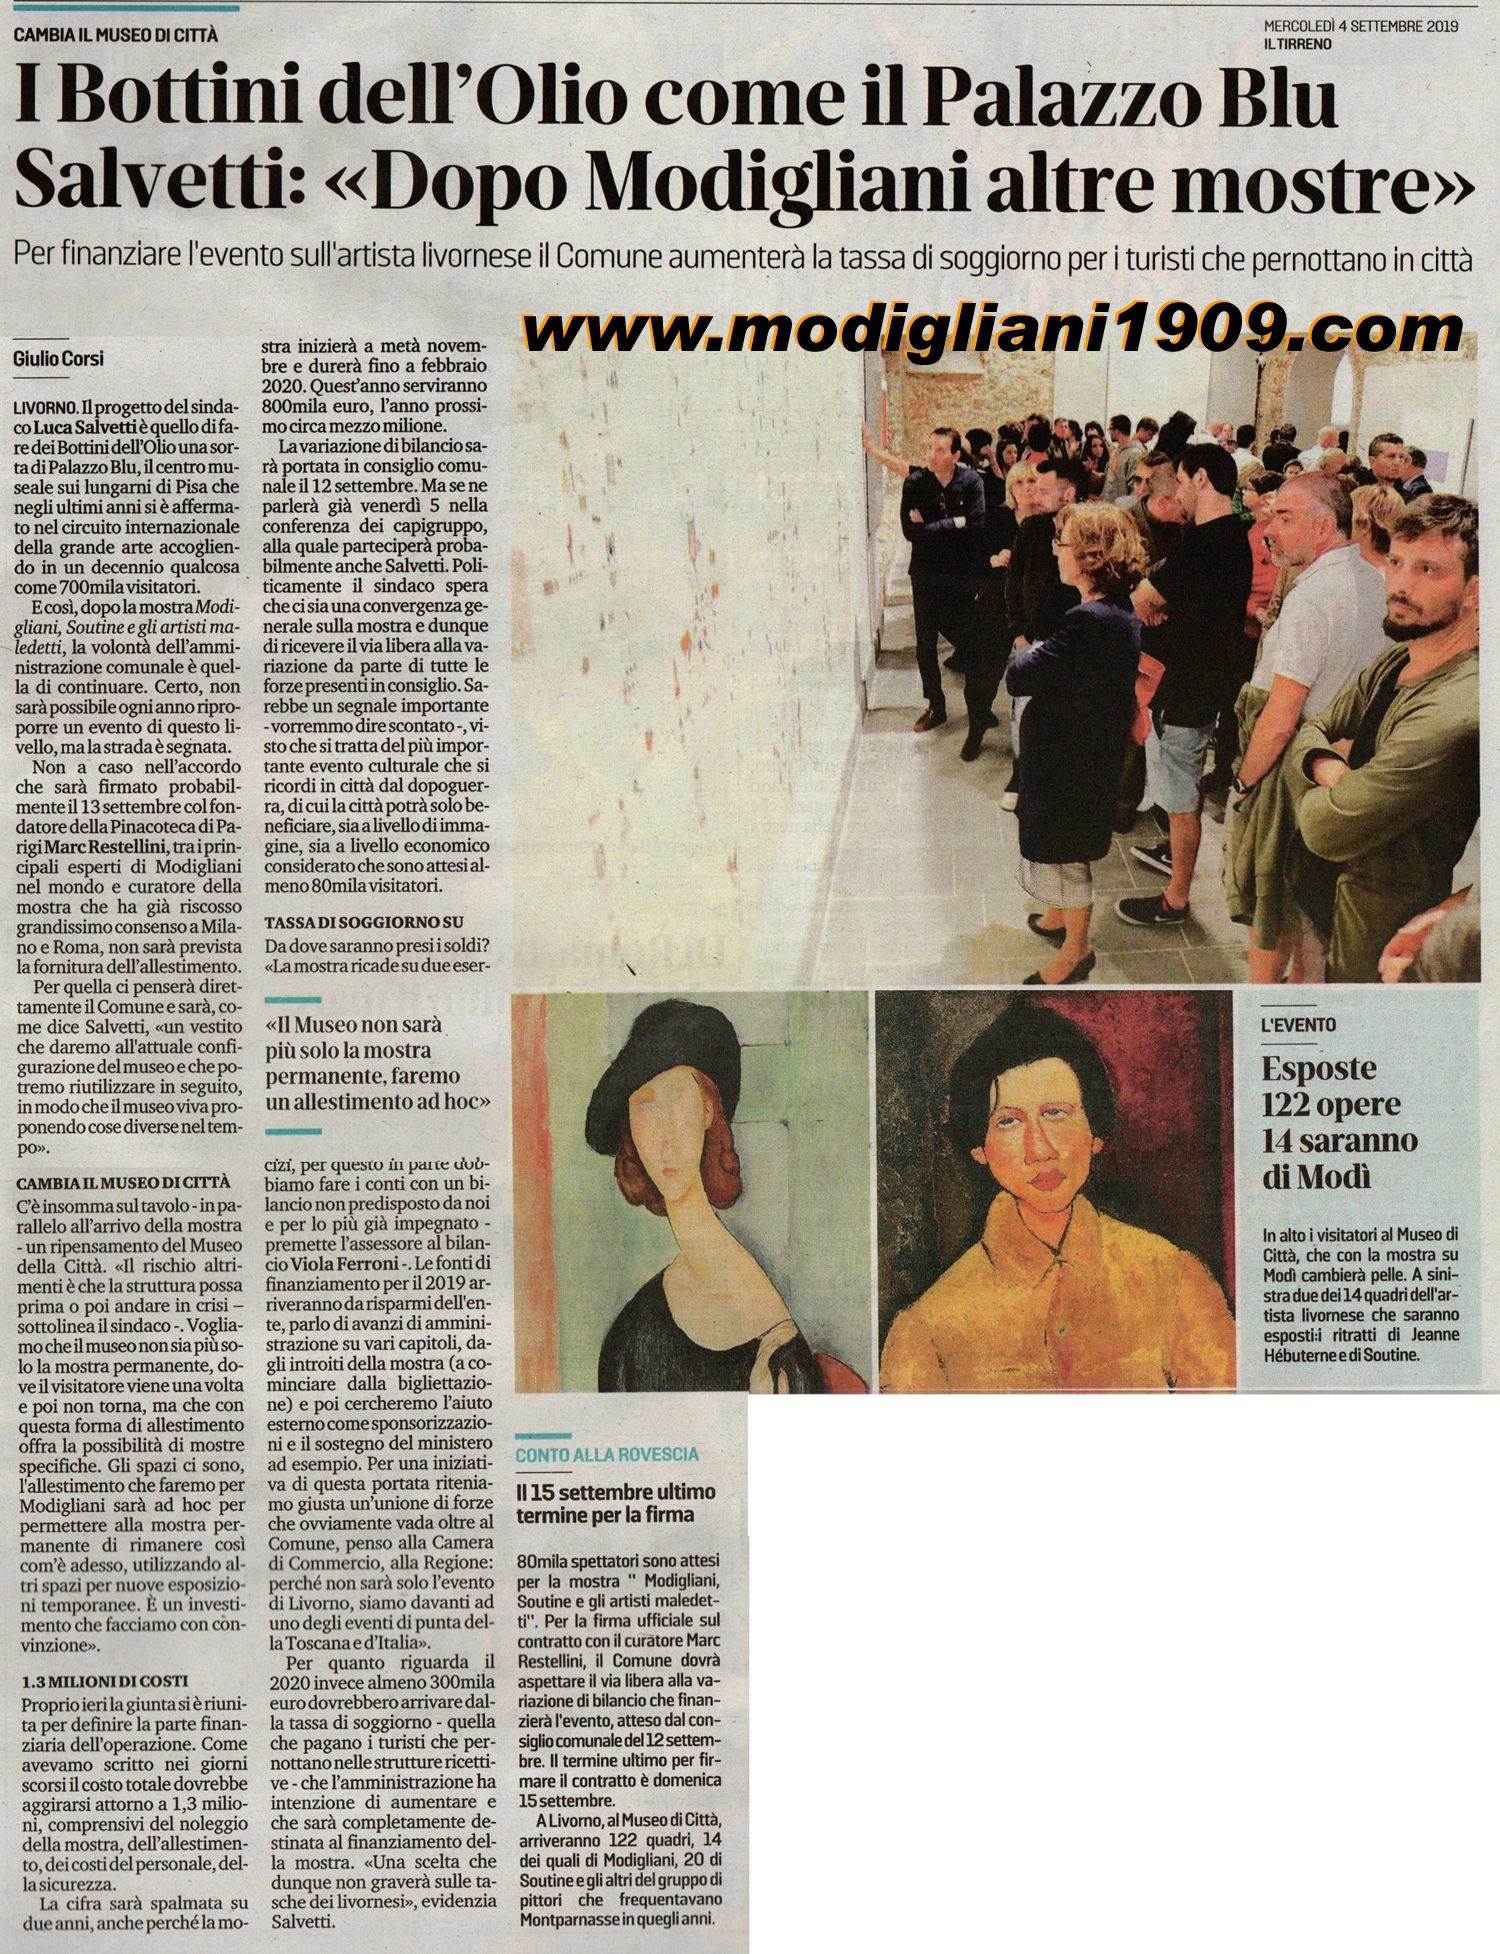 Luca Salvetti: after Modigliani other exhibitions